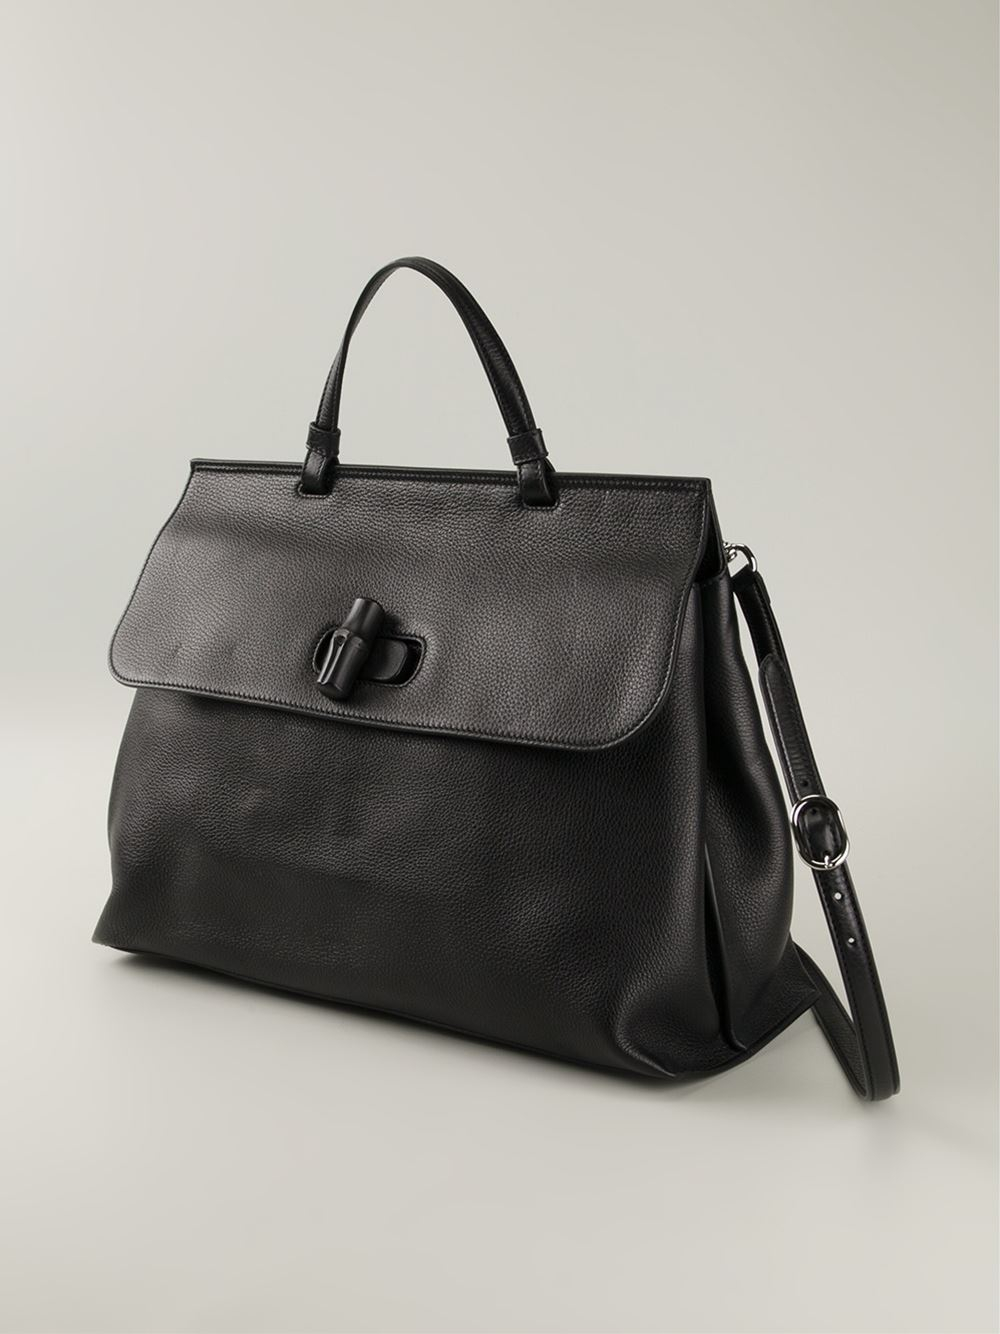 2d847b1521d616 Gucci 'bamboo Daily' Tote in Black - Lyst